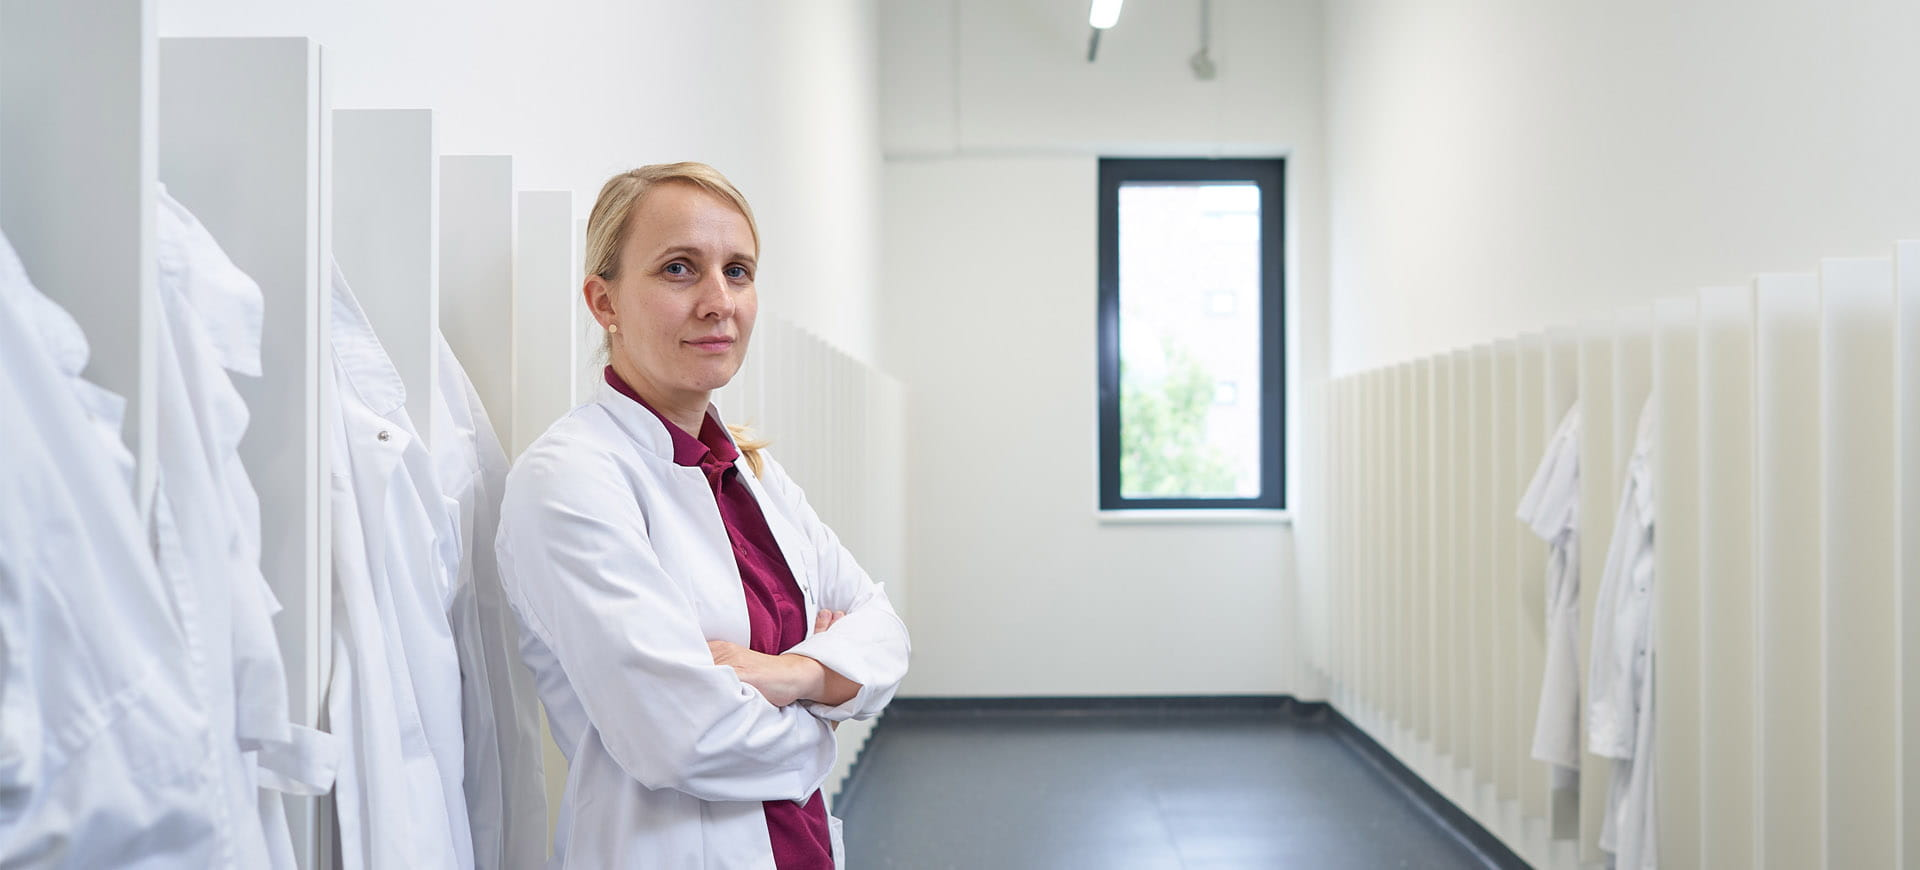 Put to the test - Dr. Katja Sänger